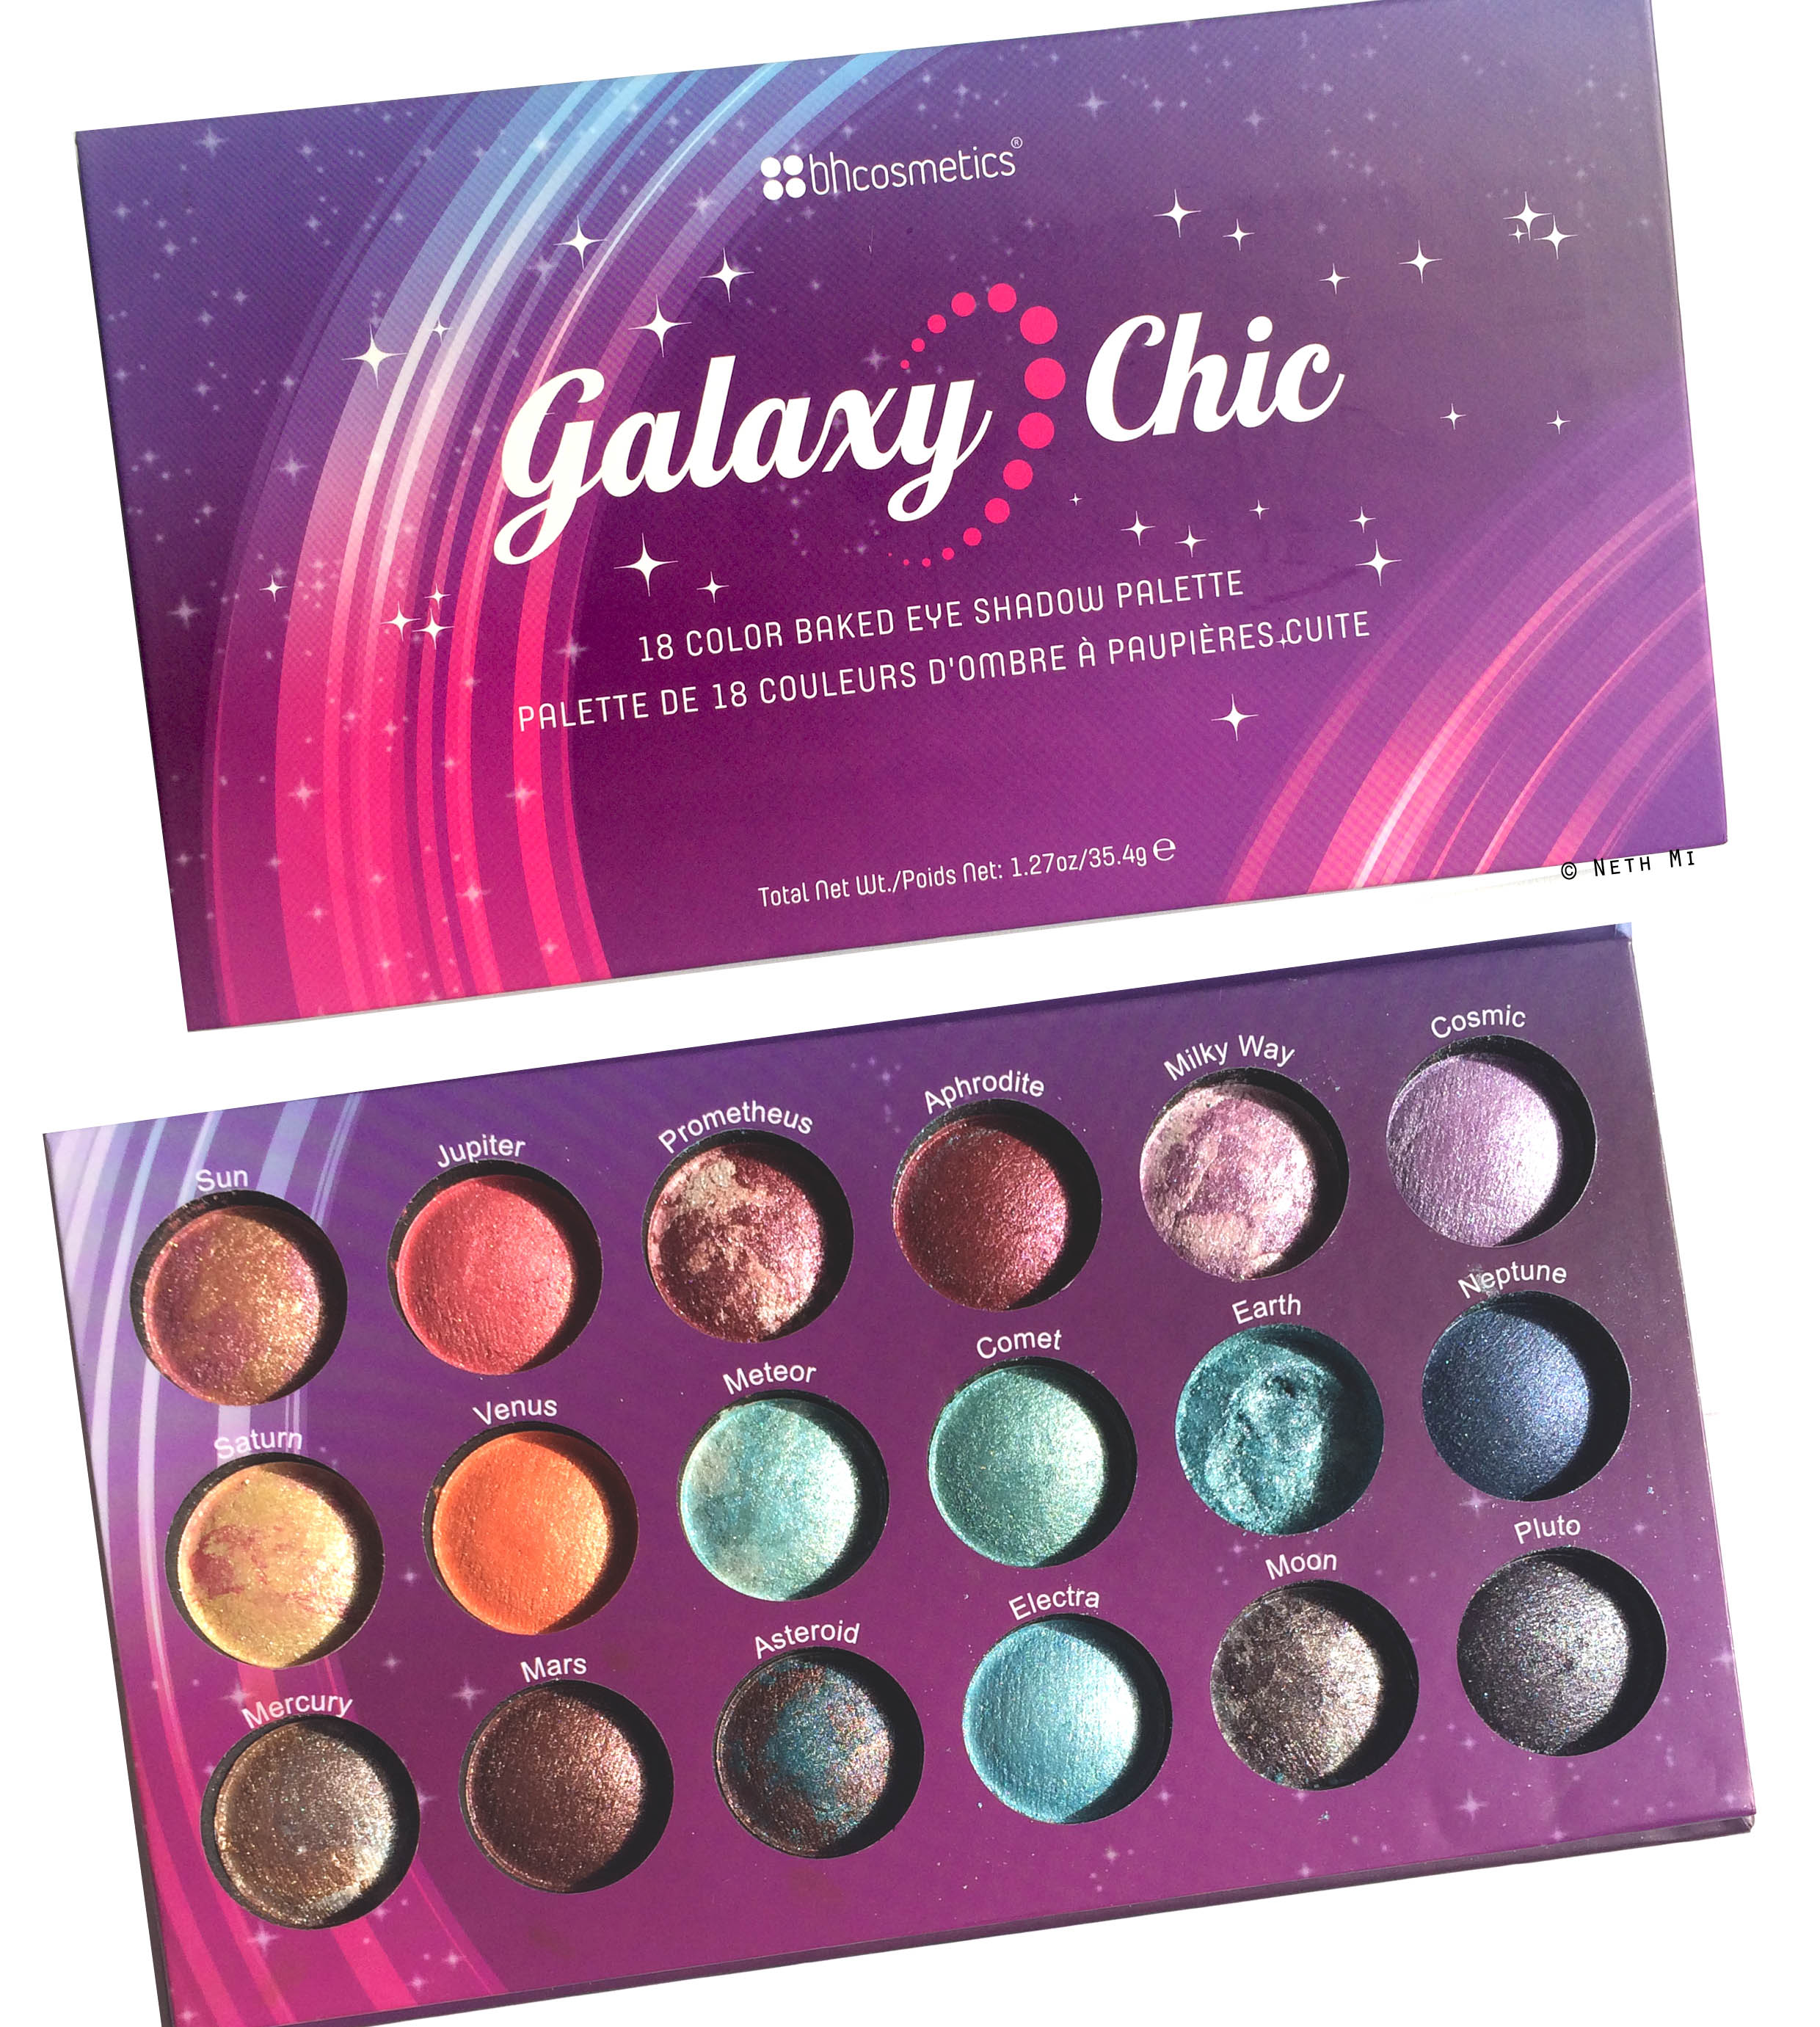 Galaxy Chic Baked Eyeshadow Palette by BH Cosmetics #16